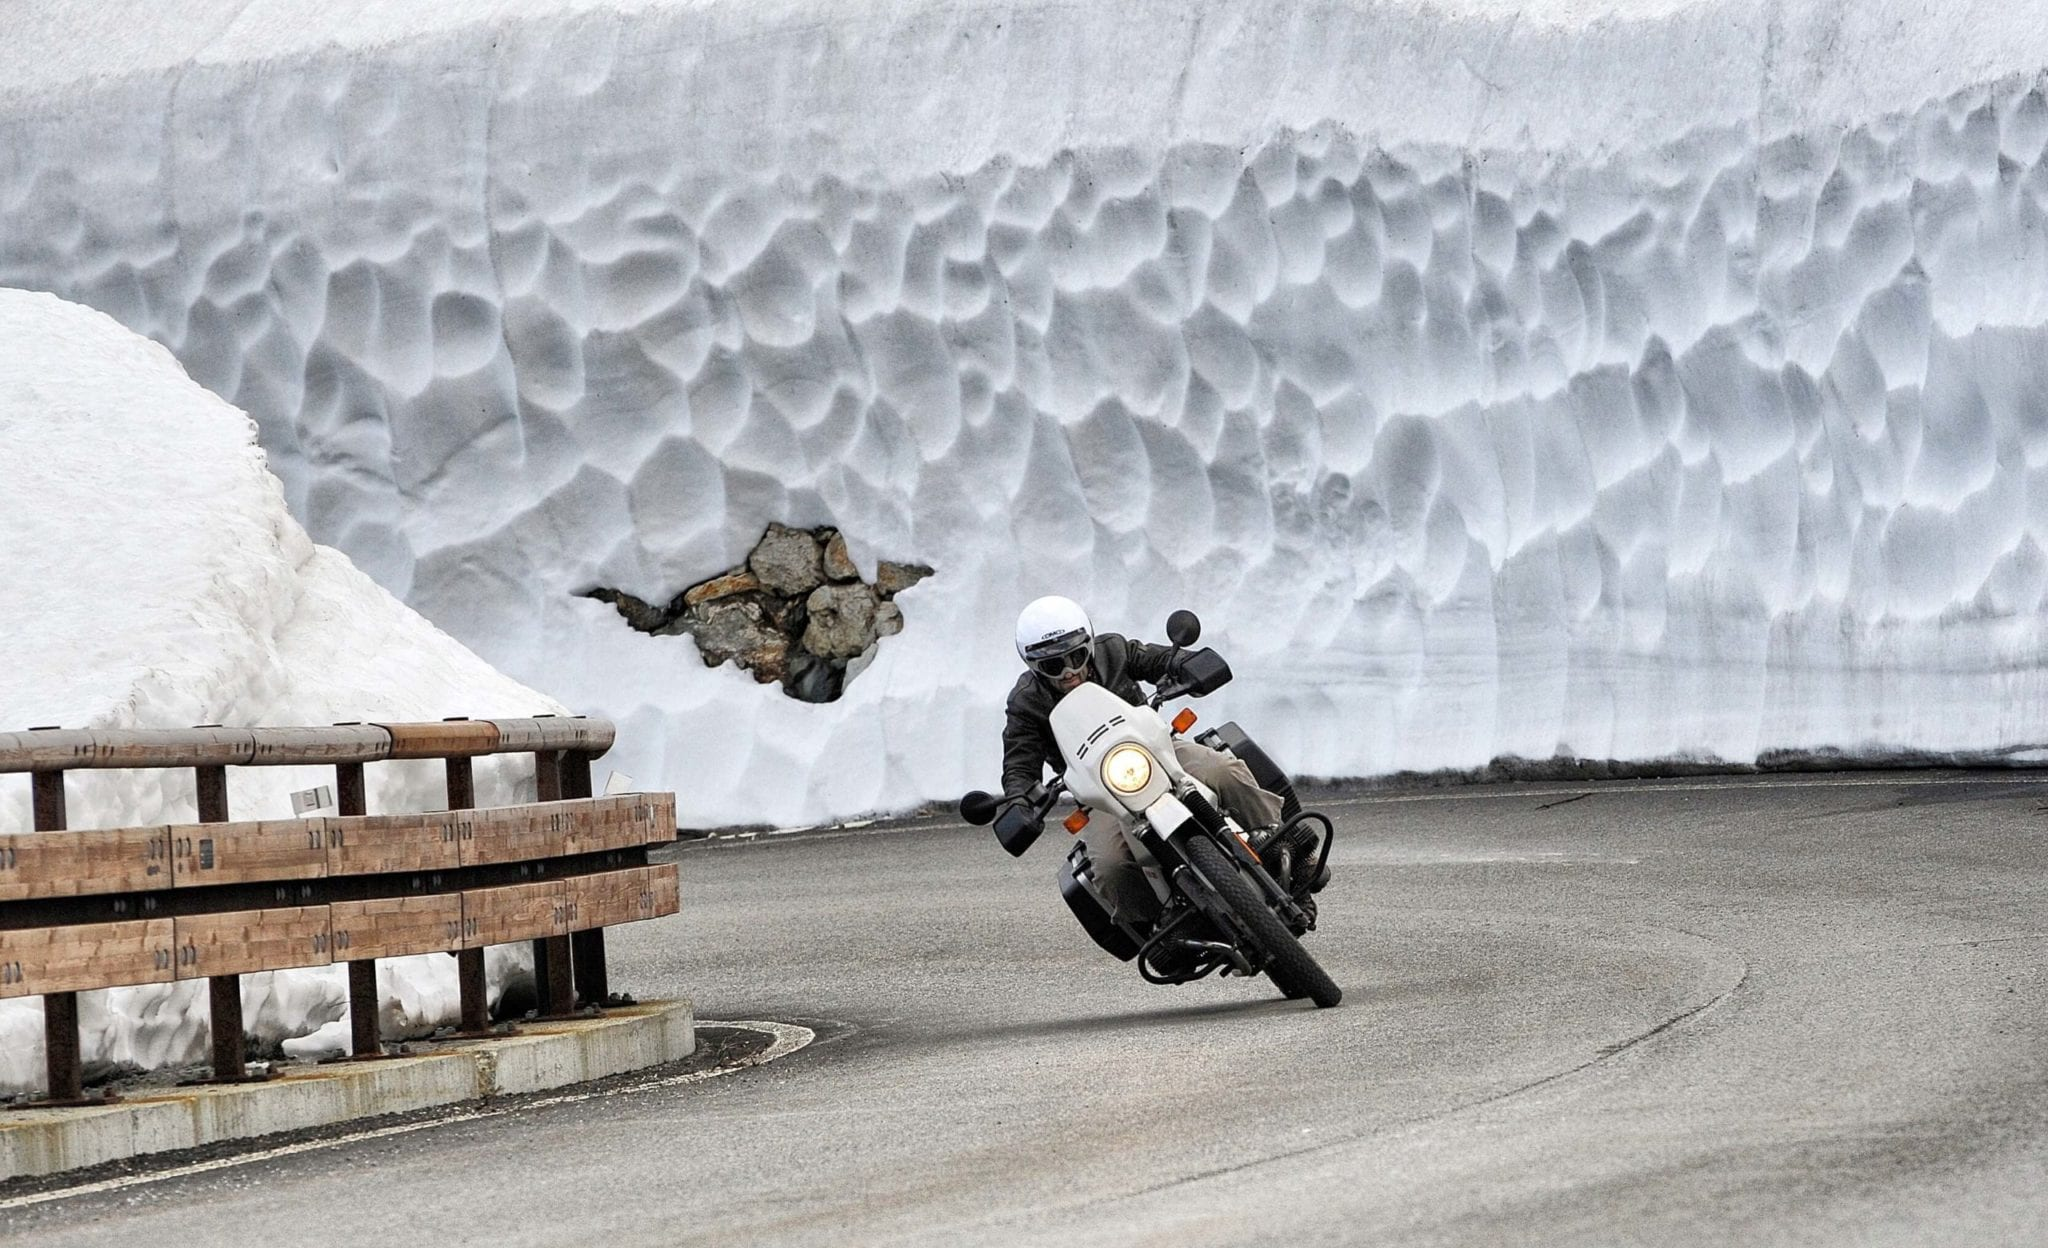 Riding Your Motorcycle in Winter Weather